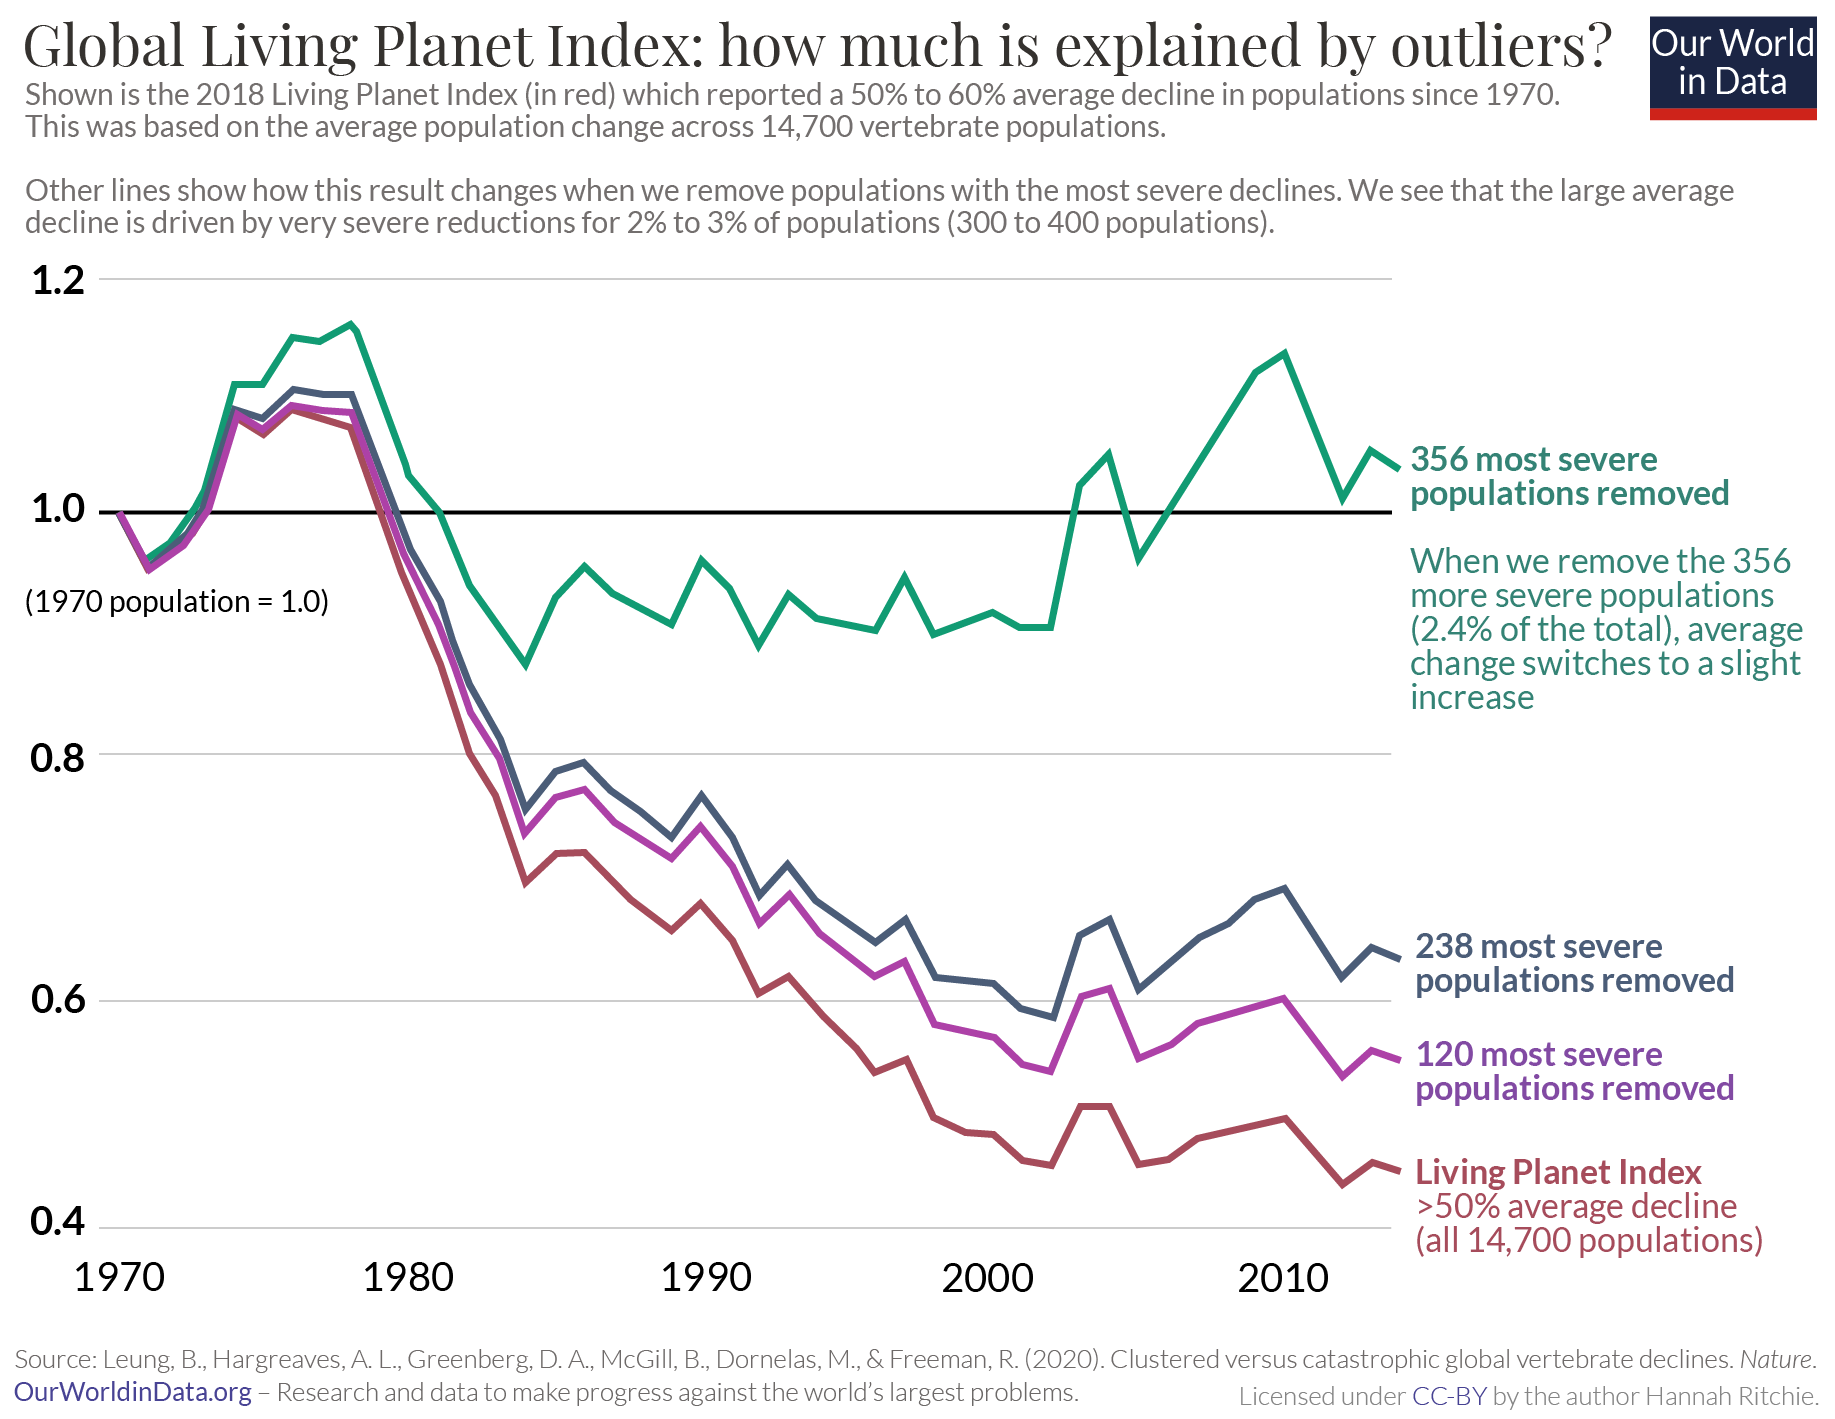 Impact of extremes on living planet index